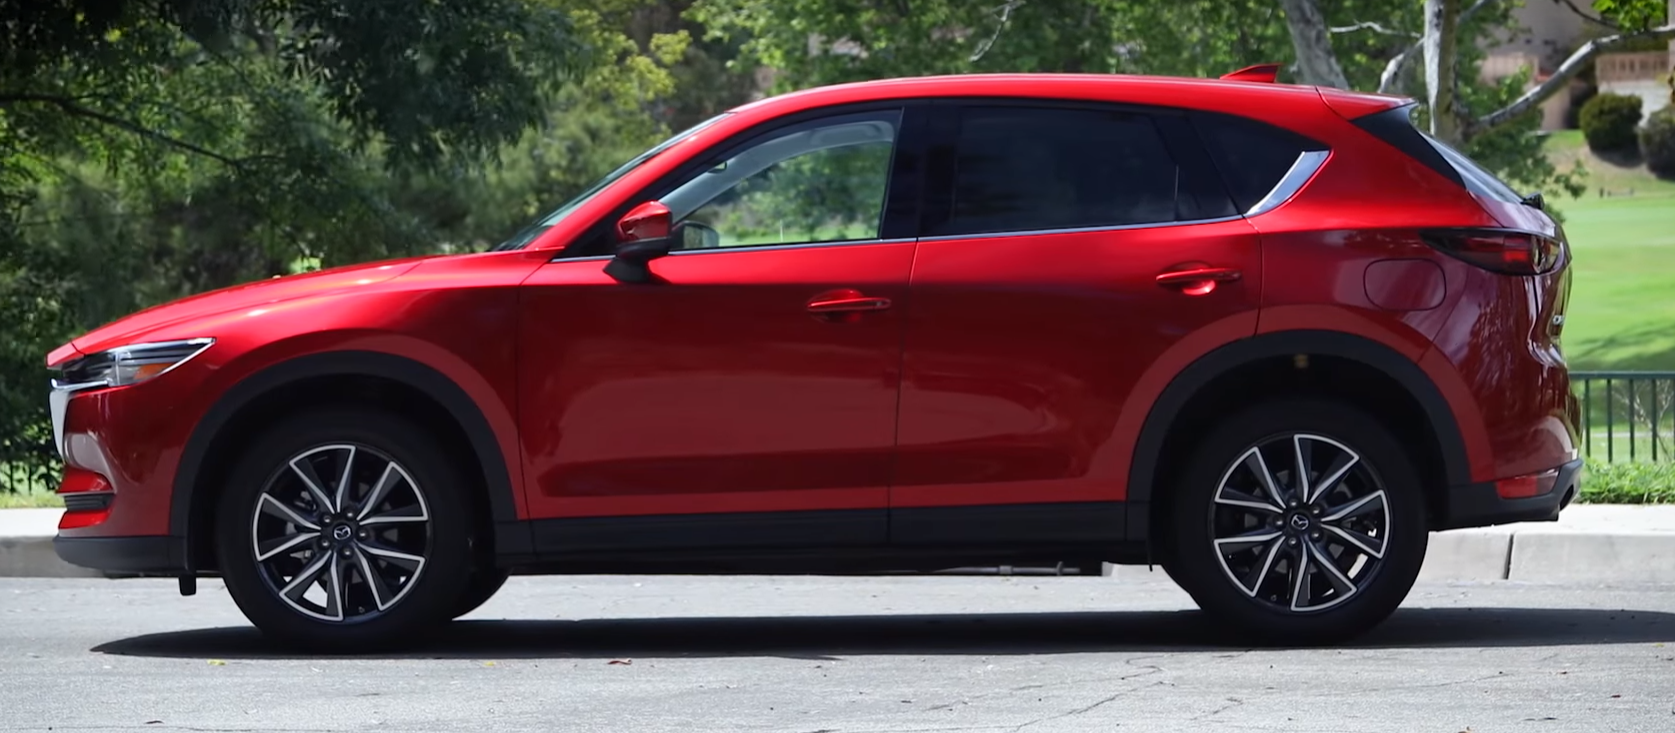 New Mazda CX-5 for the Russian Federation